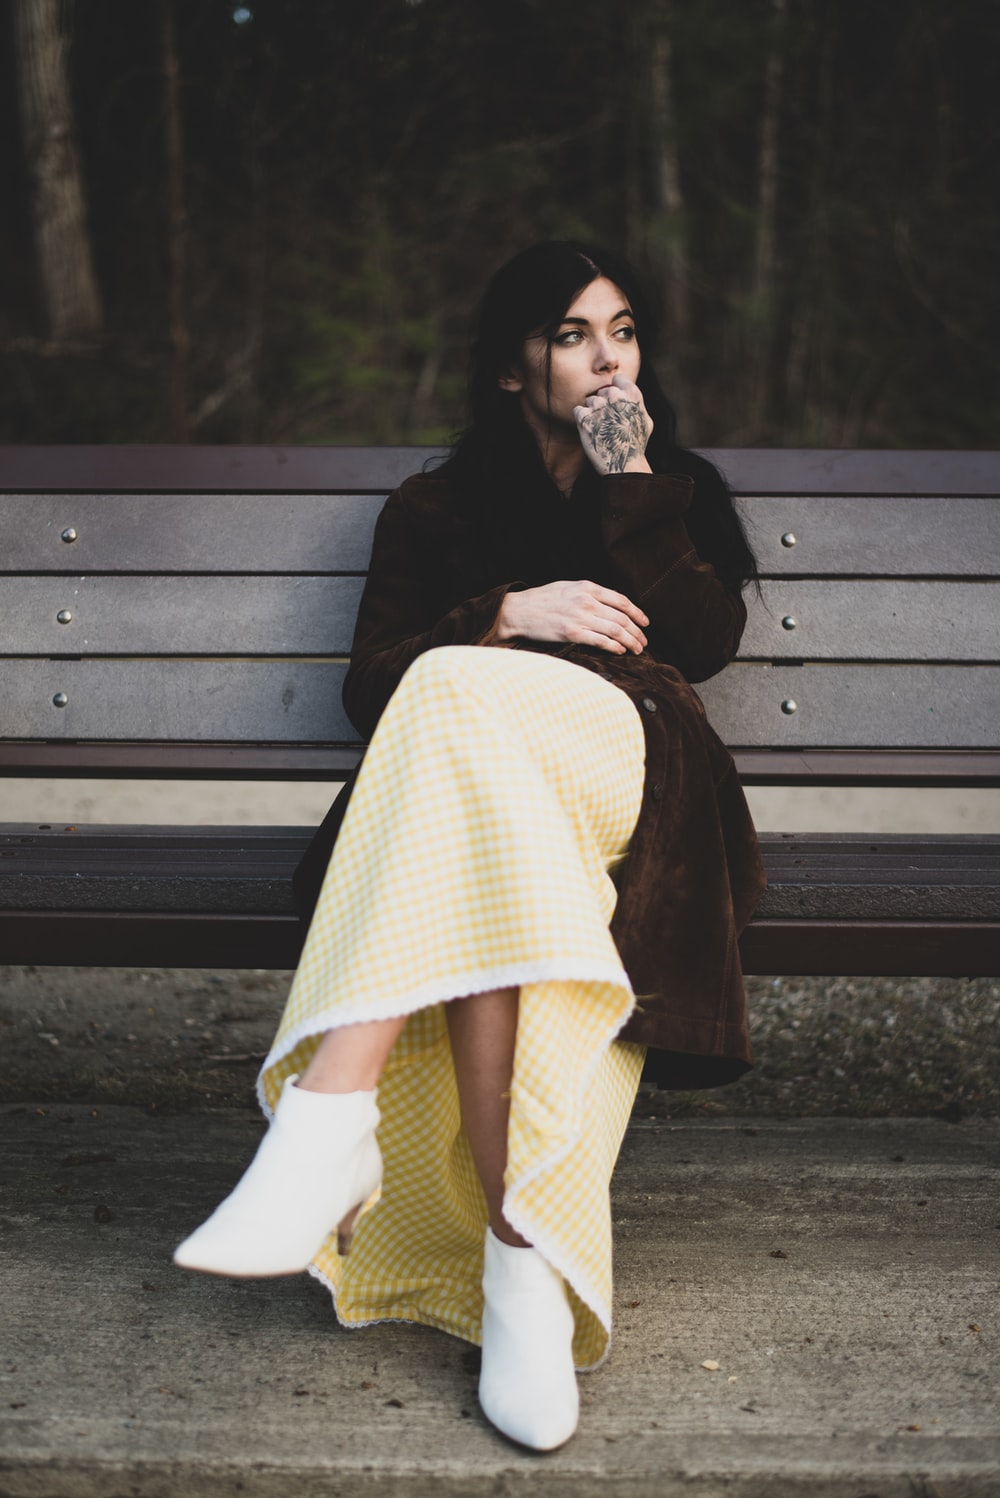 woman in black coat and white skirt sitting on brown wooden bench